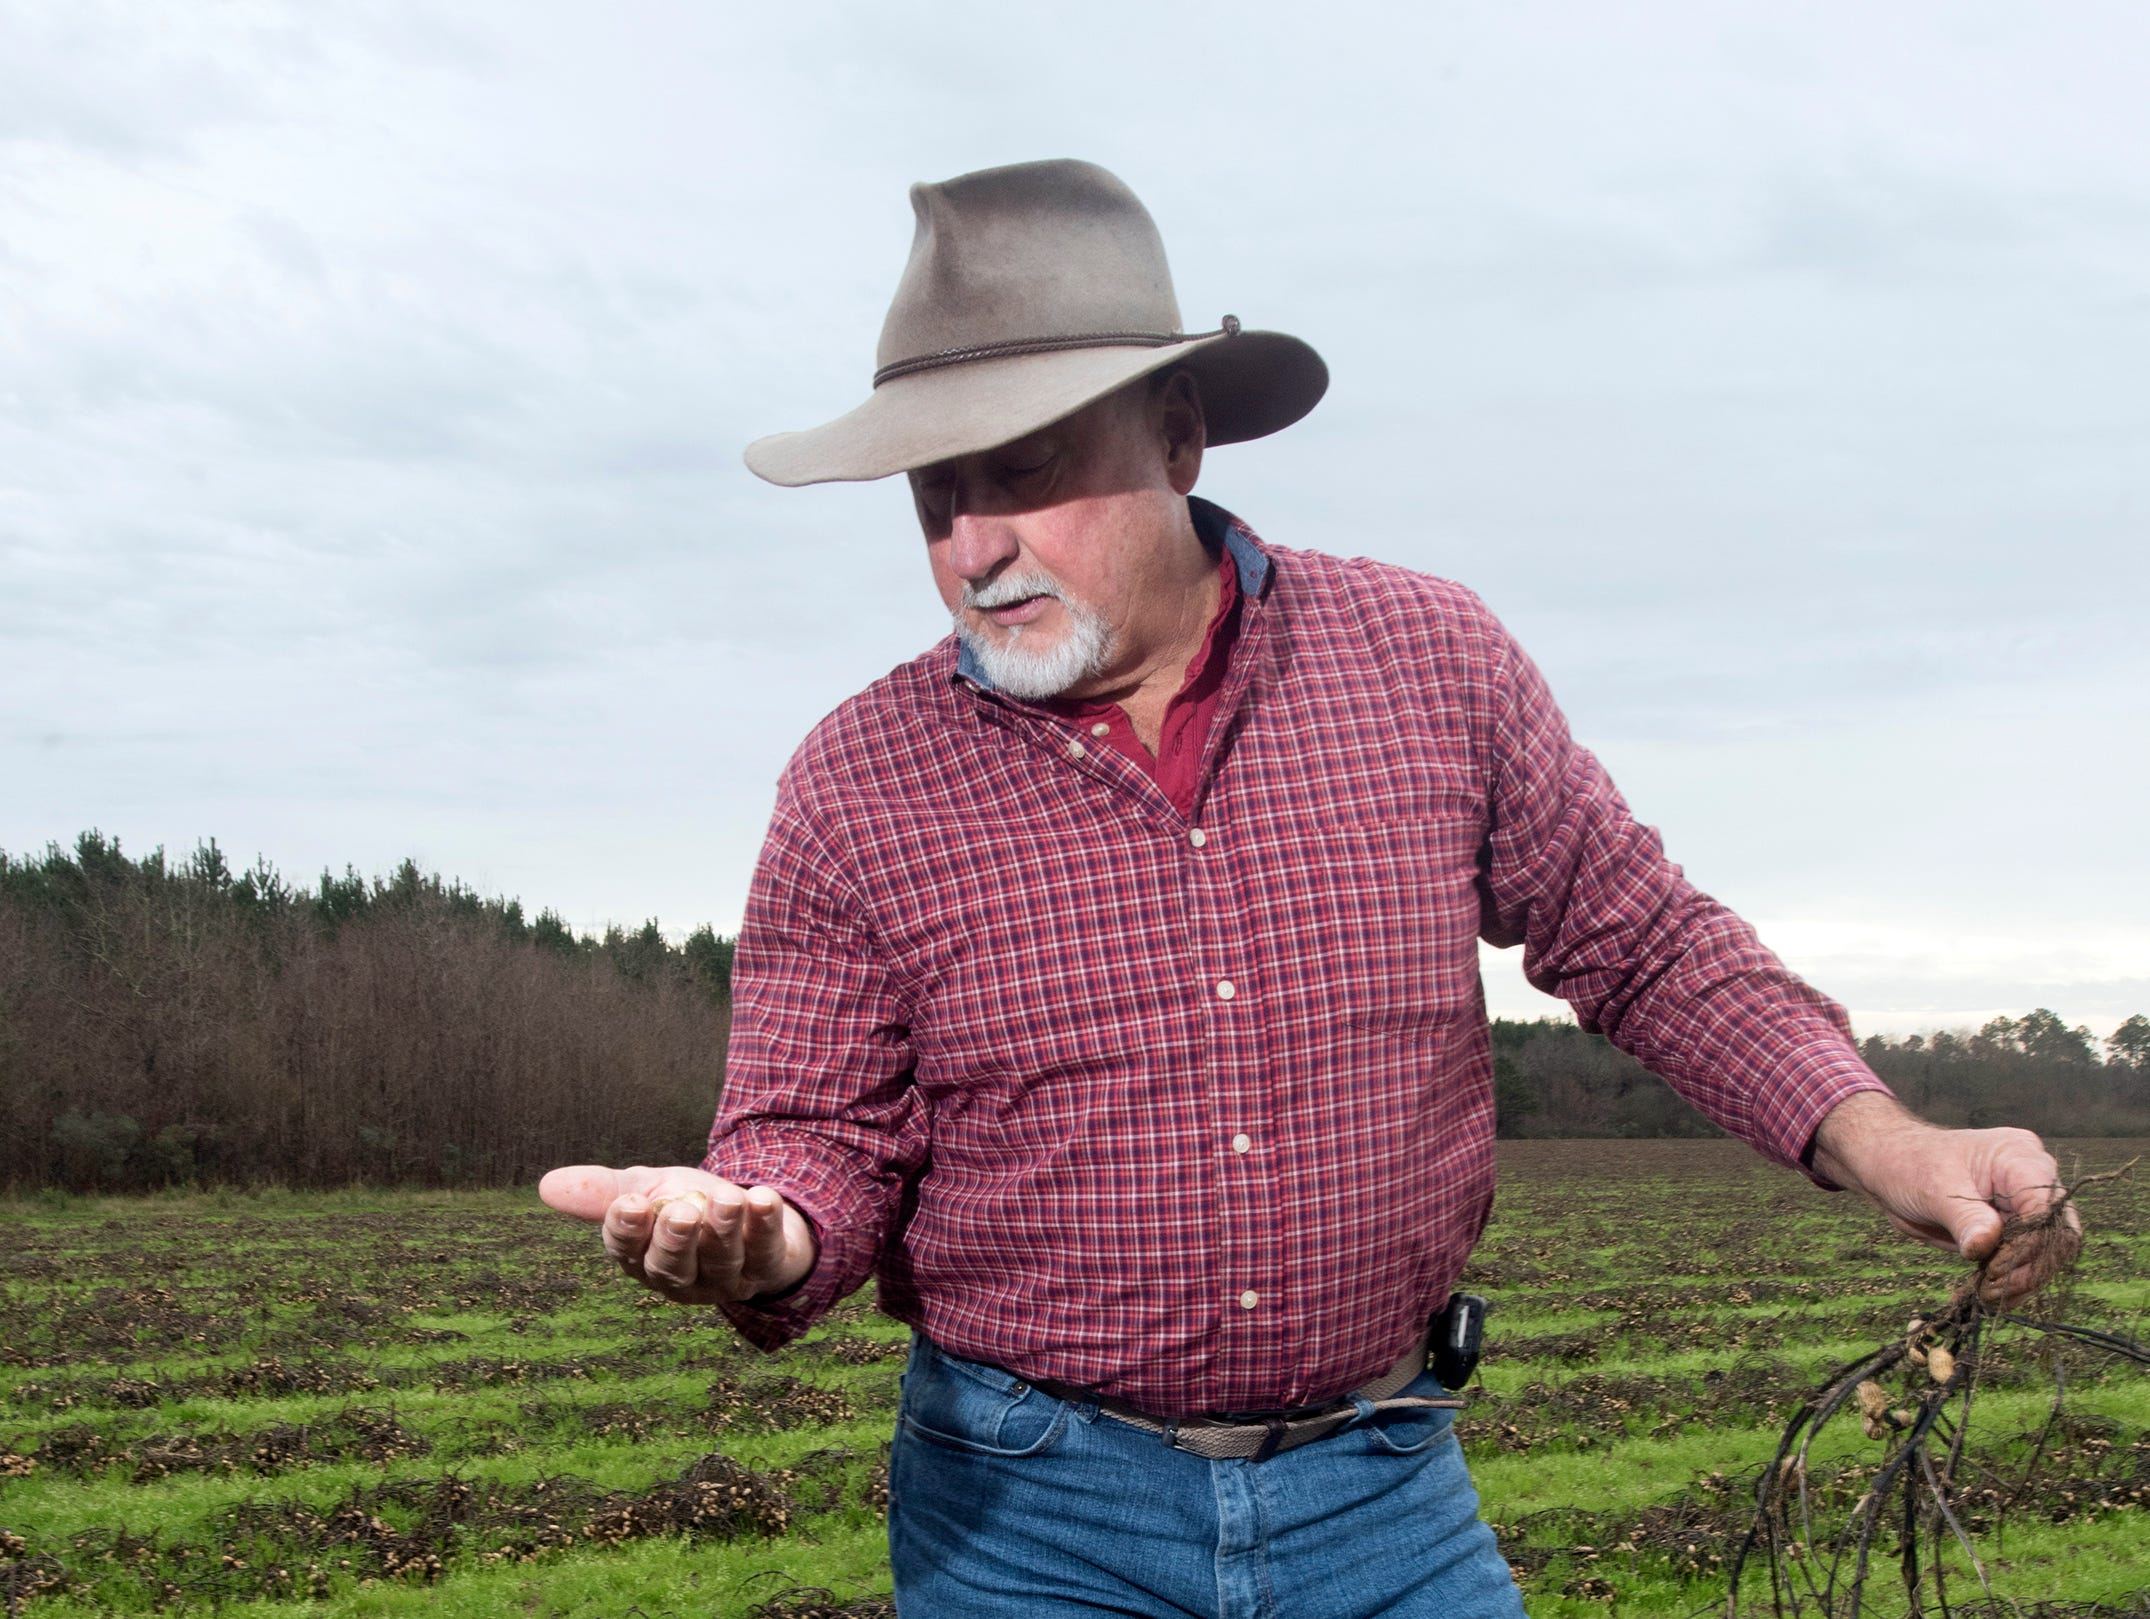 Atmore area farmer, Rodney Helton, inspects what is his peanut crop in a rain-soaked field on Thursday, Jan. 3, 2019. Helton, like many area farmers, is facing significant loses after record rainfall total this harvesting season.